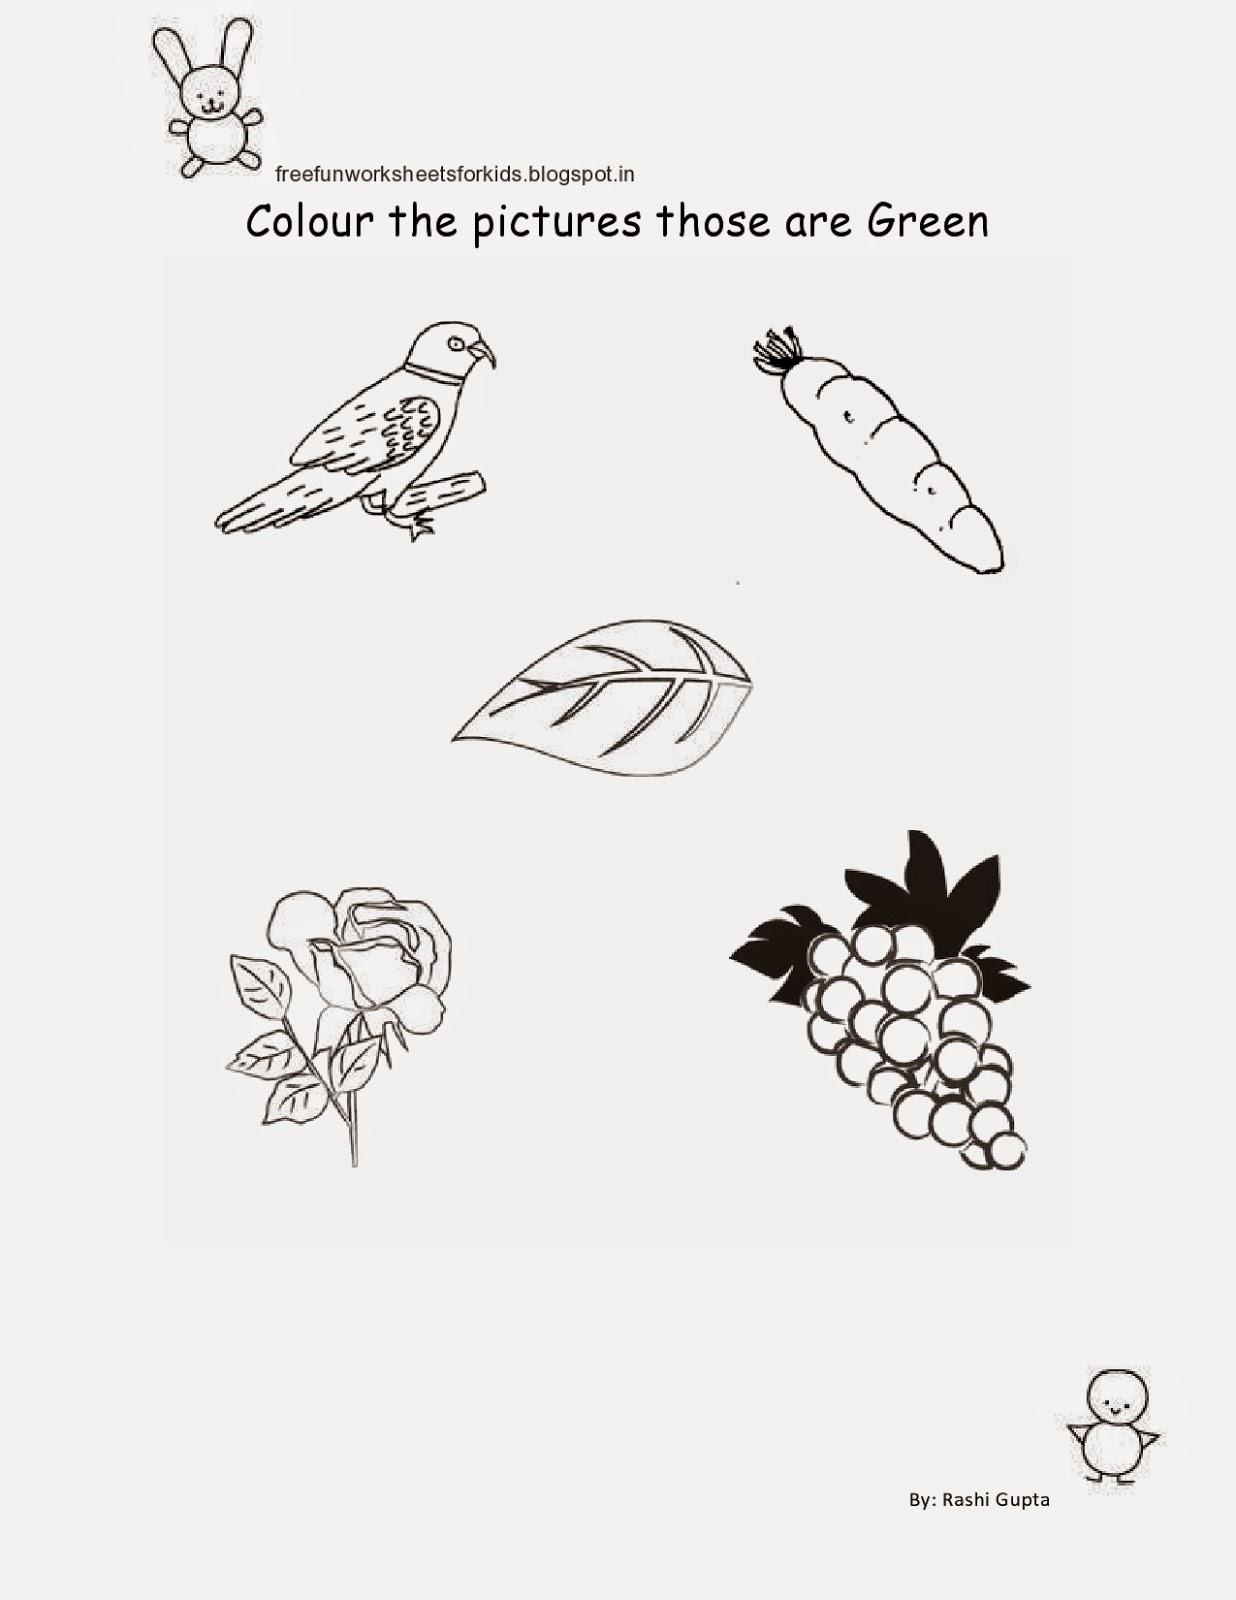 free fun worksheets for kids free printable fun worksheets for class nursery colour the objects. Black Bedroom Furniture Sets. Home Design Ideas